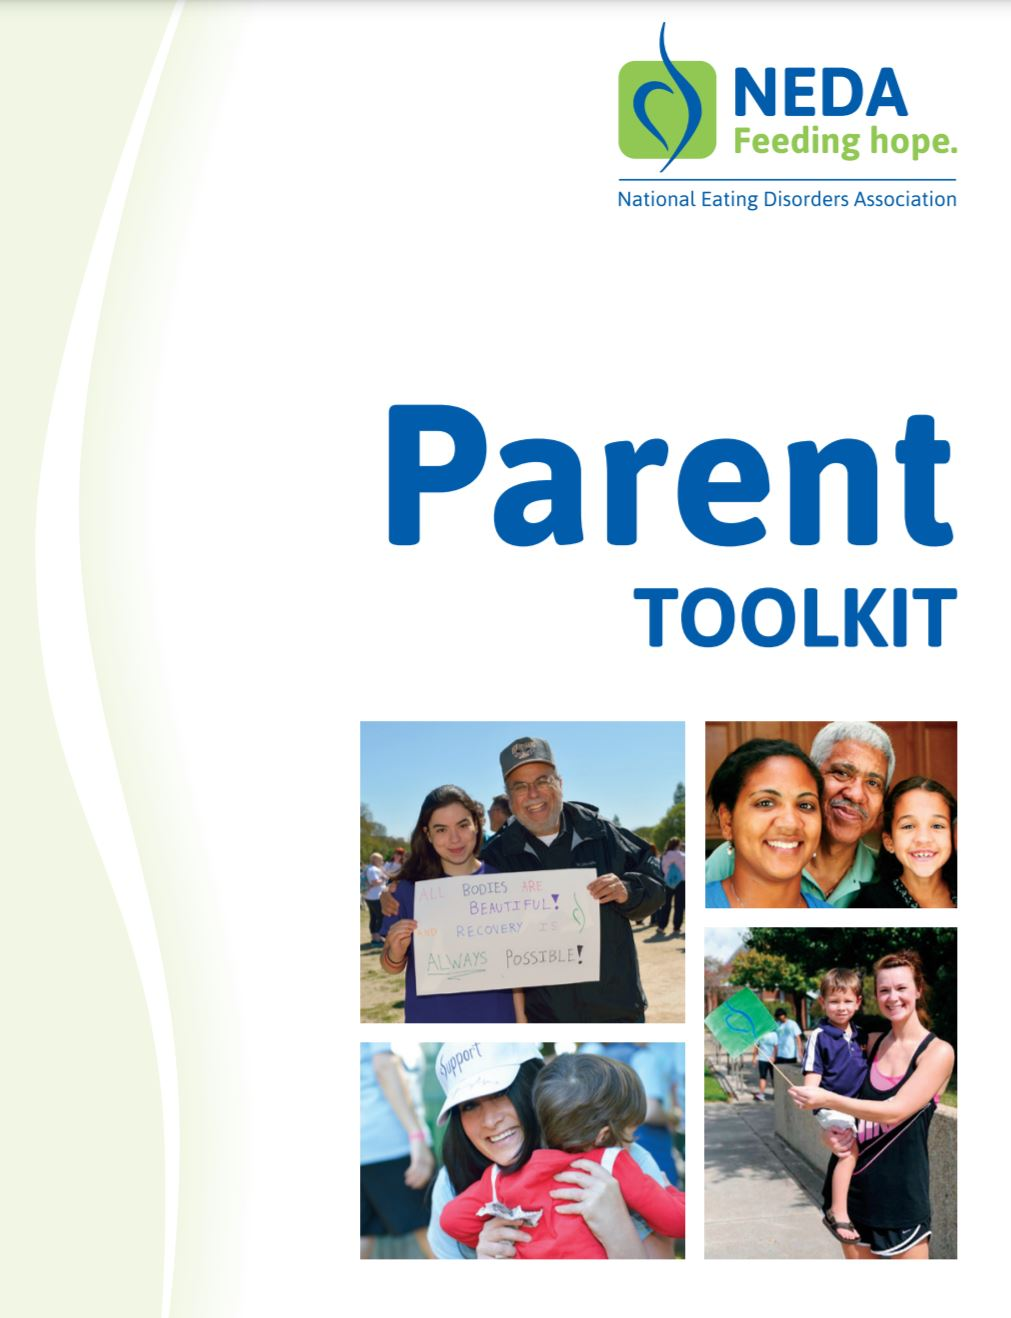 parent toolkit for eating disorders